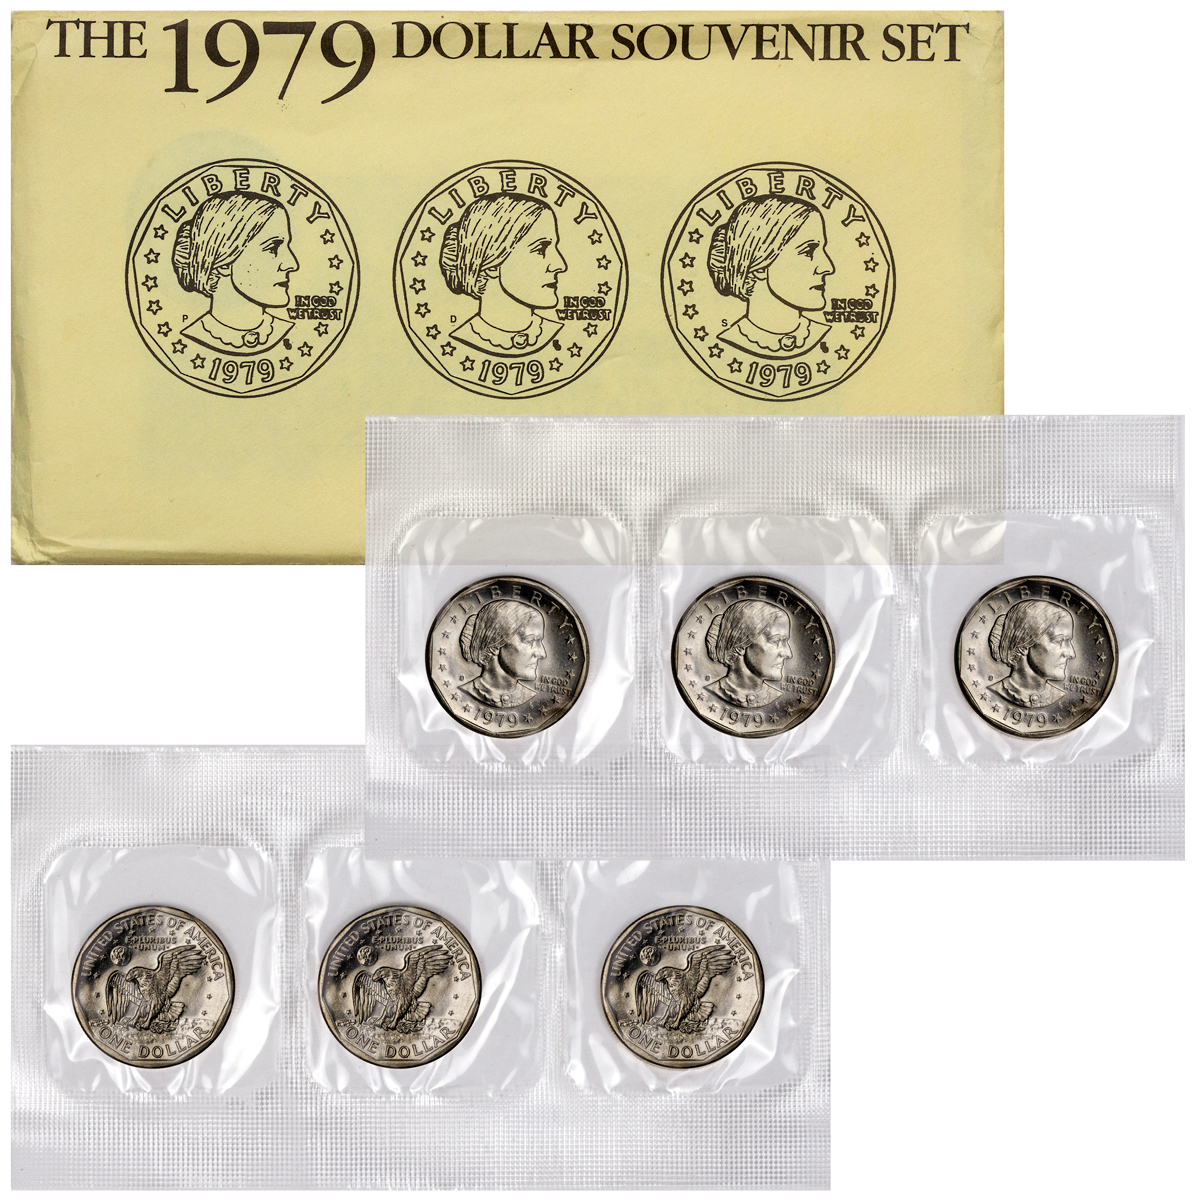 1979 Susan B. Anthony Dollar Souvenir Set - GEM BU (Original Mint Packaging)